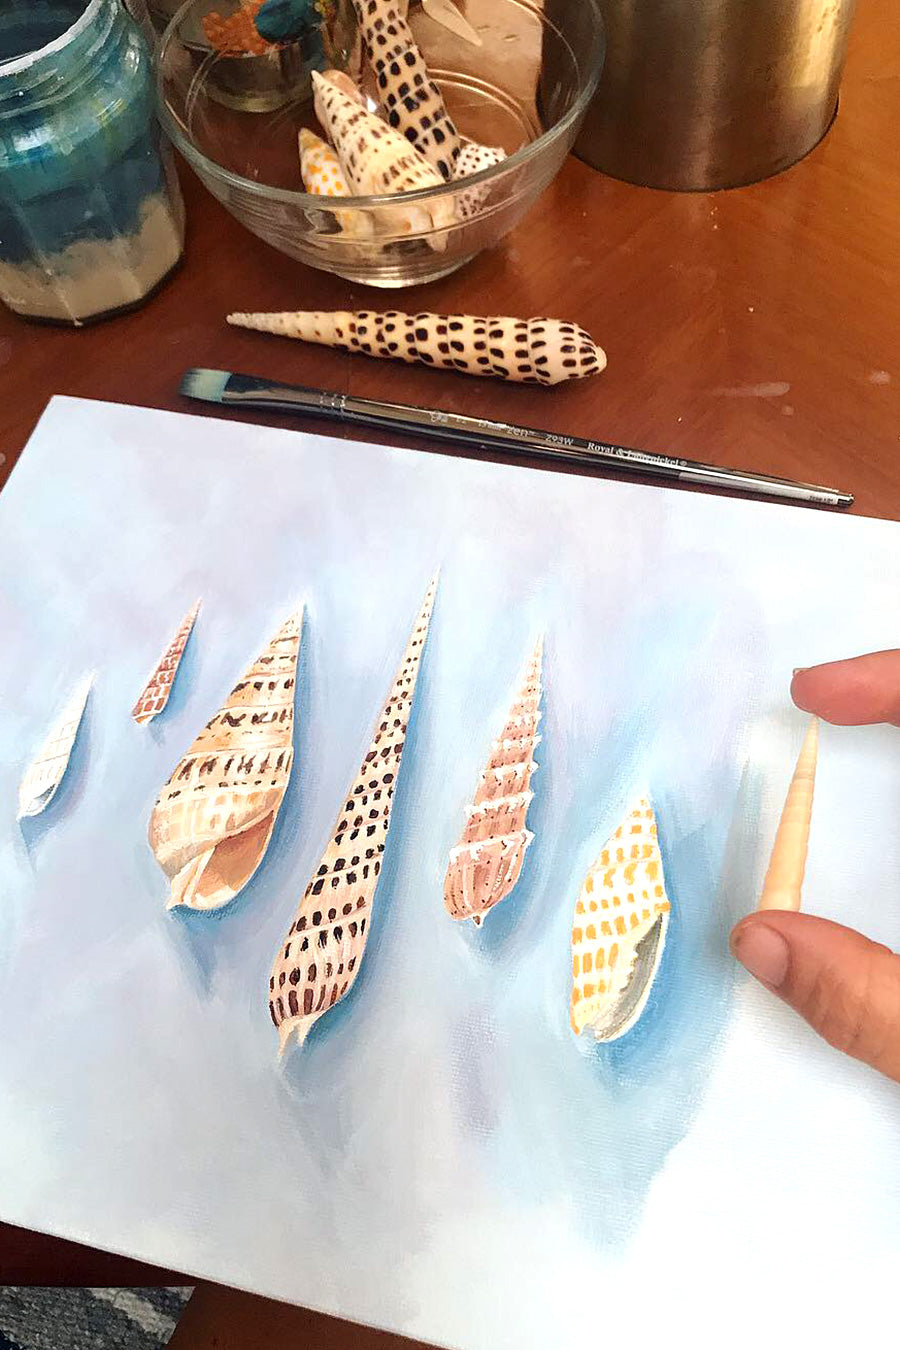 Painting Shells from Tahiti and French Polynesia